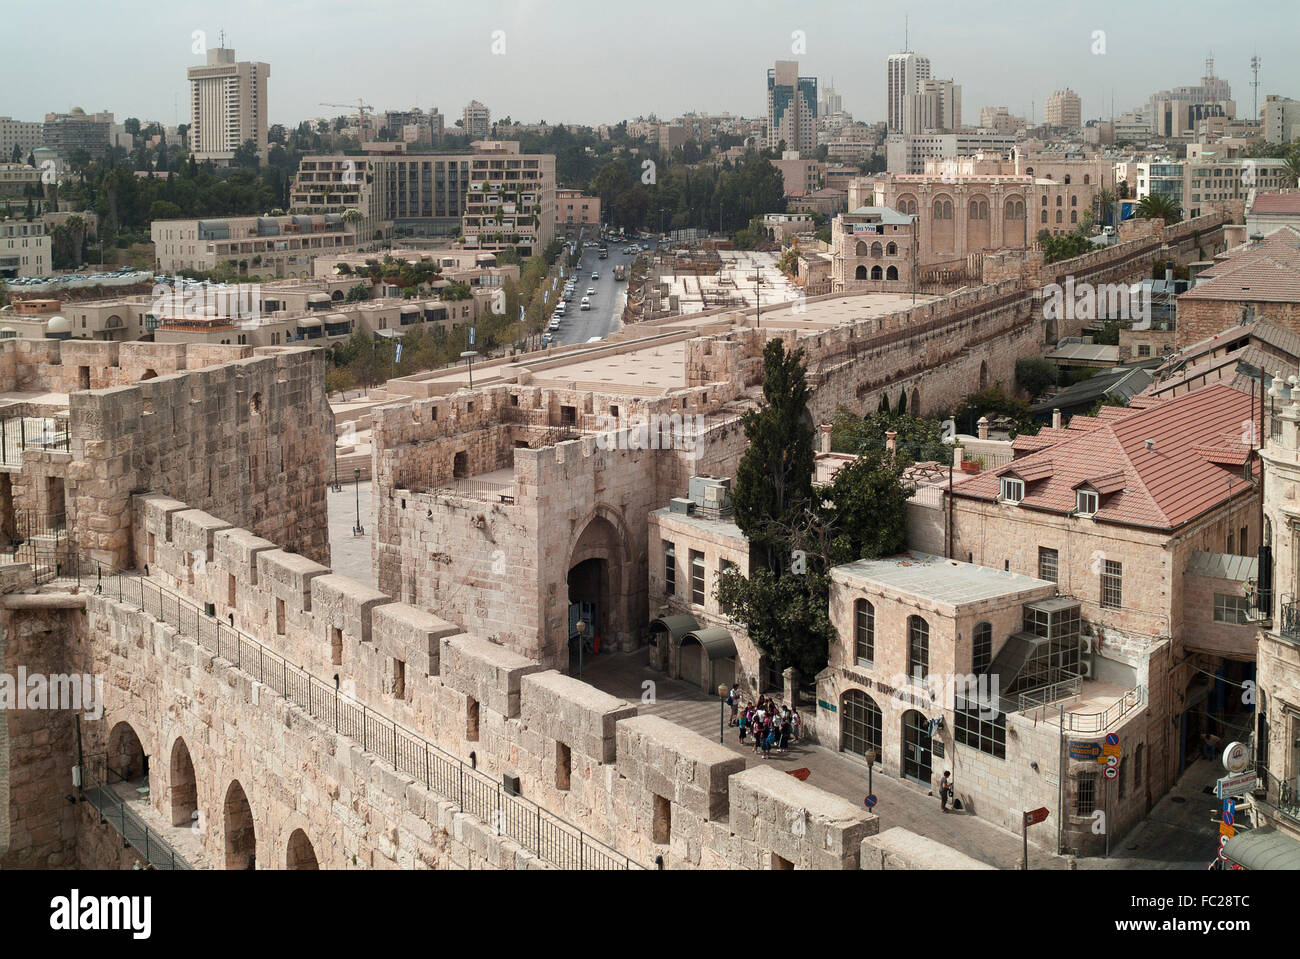 Jaffa Gate and city wall, Tower of David, Old City ...